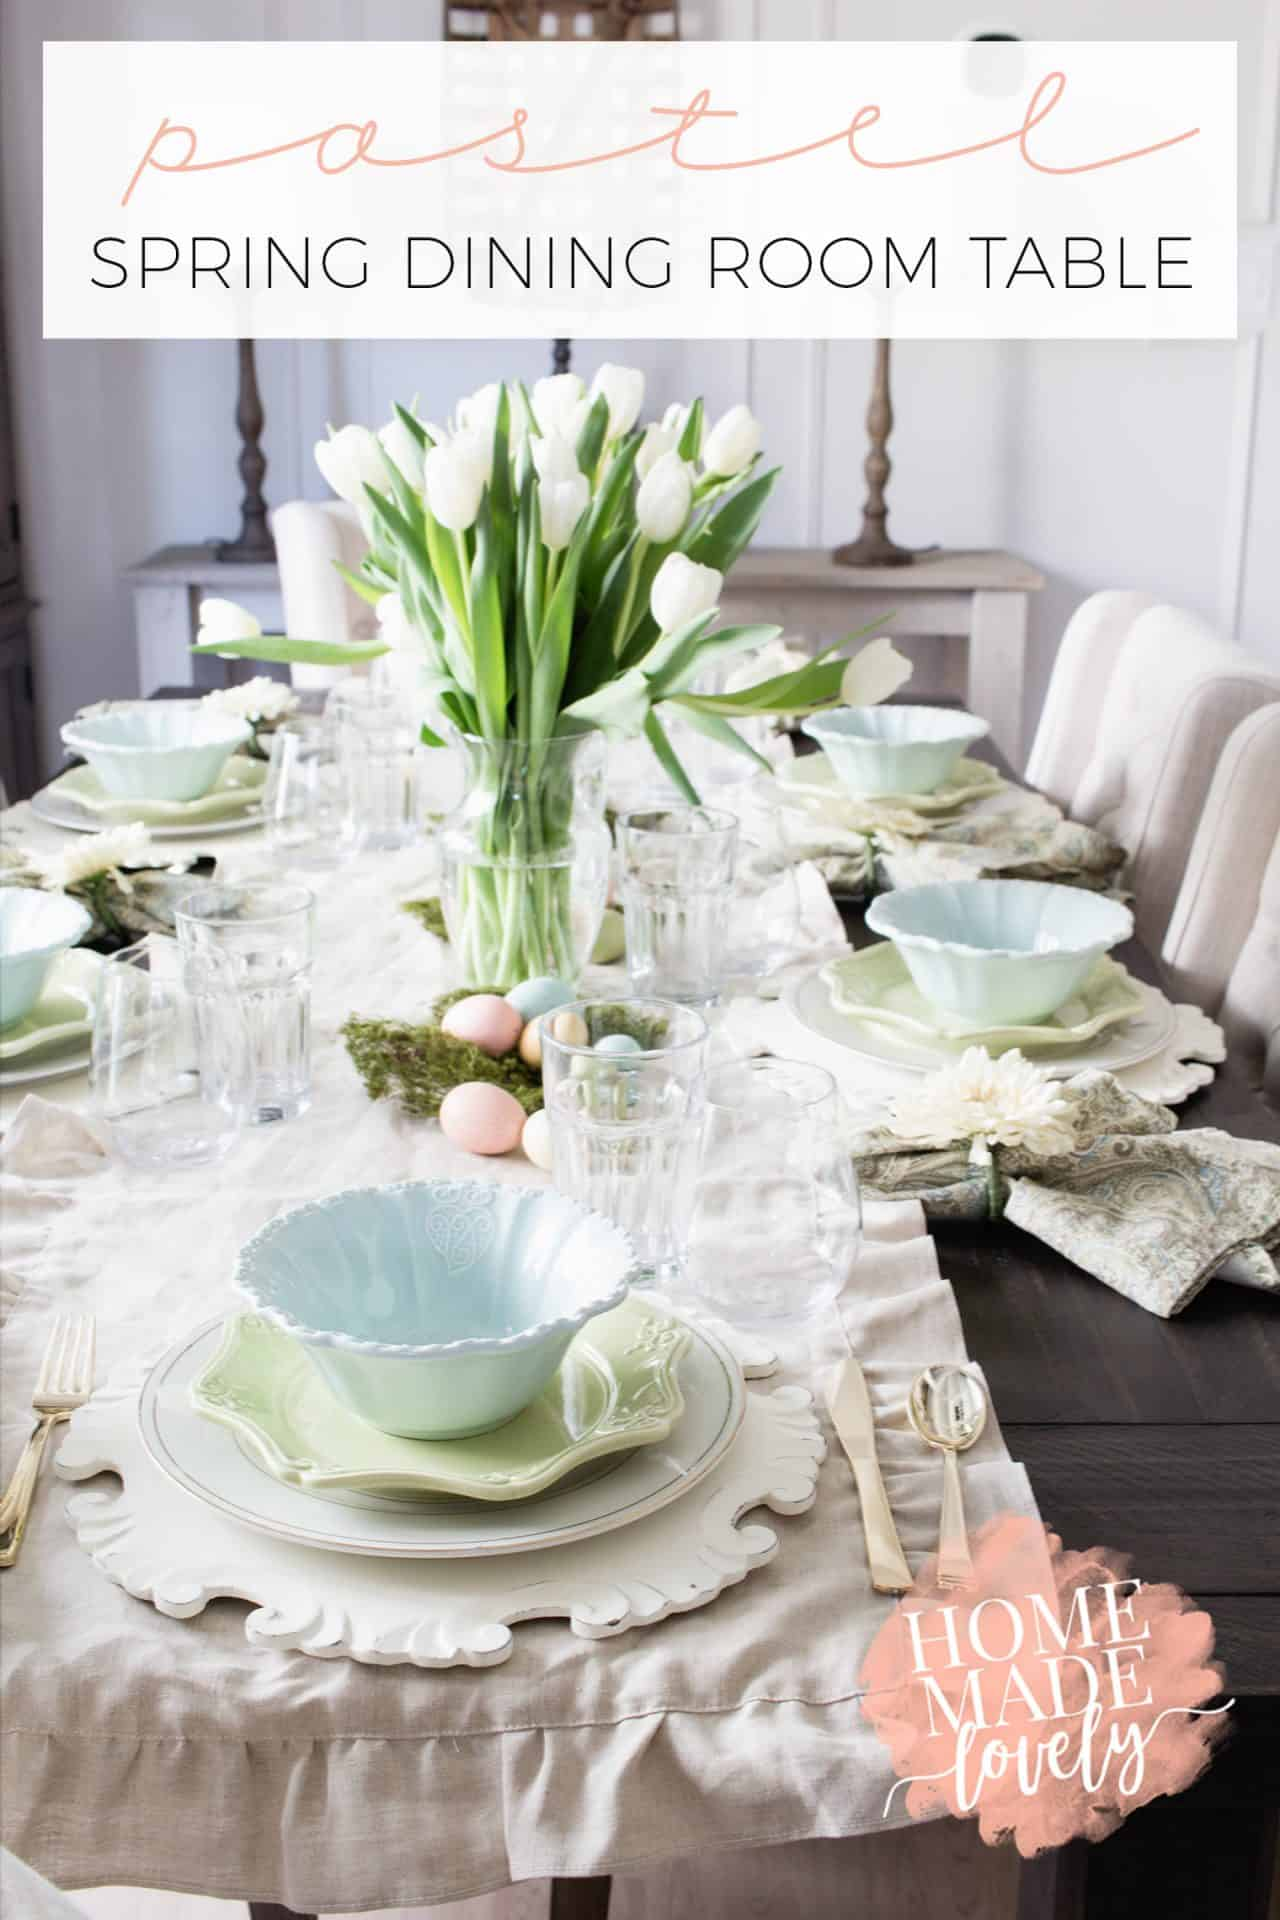 We've put together a pretty pastel spring dining room table to share with you. Plus all the resources for you to create it at your house too!